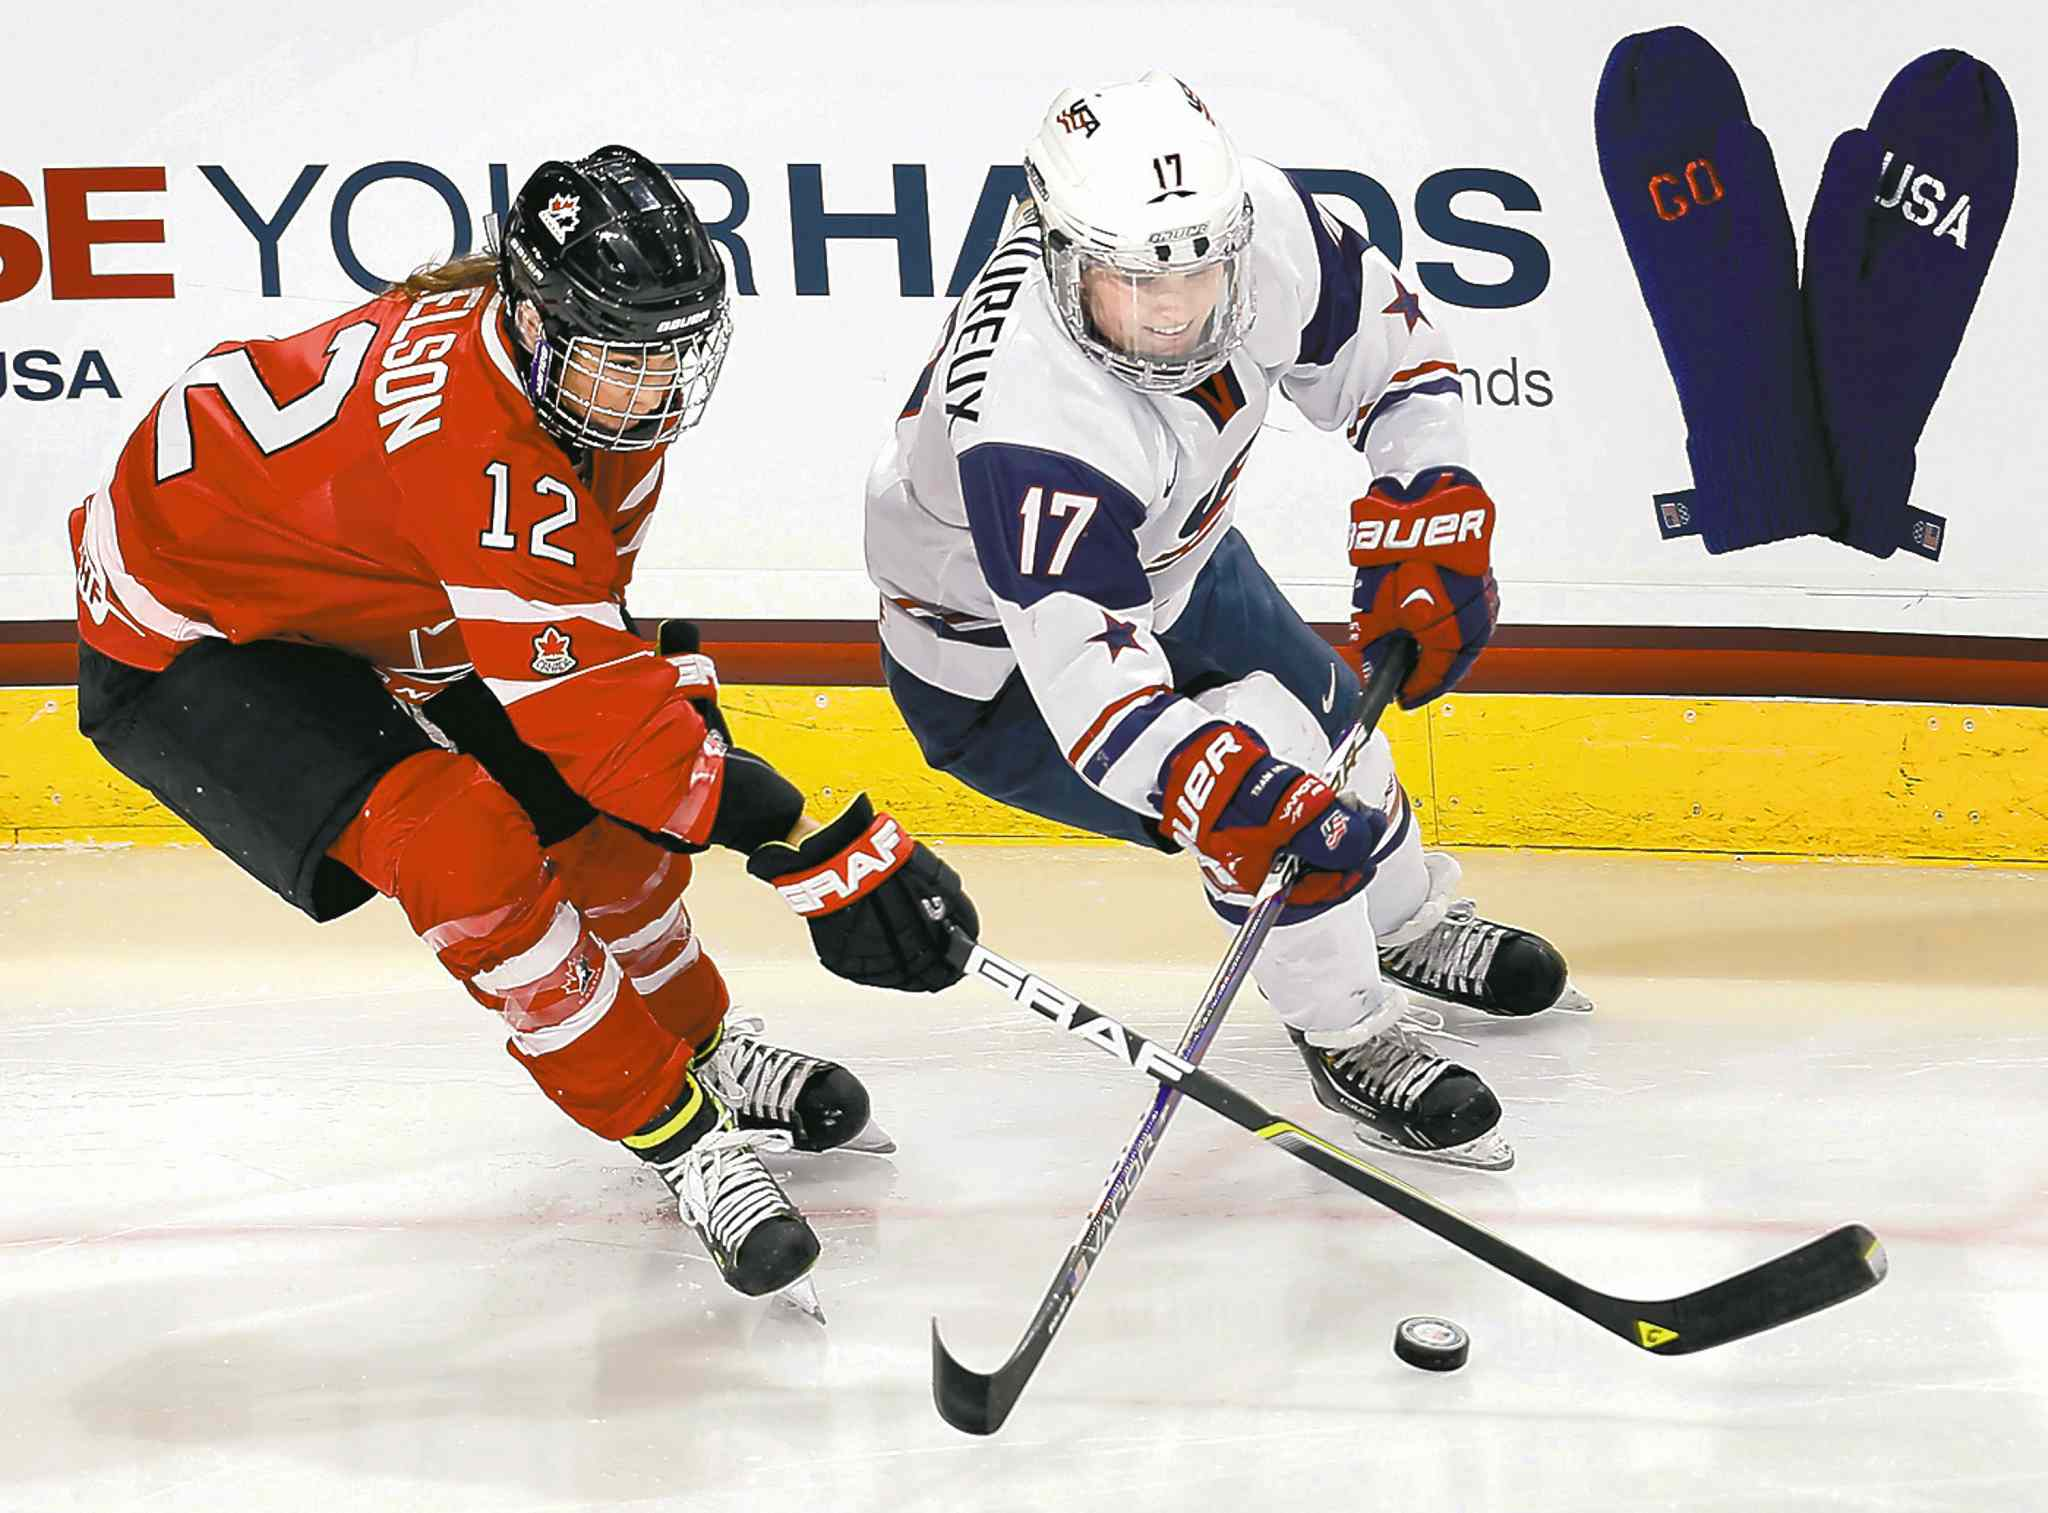 Canada's Meaghan Mikkelson (12) and Team USA's Jocelyne Lamoureux fight for the puck Saturday.